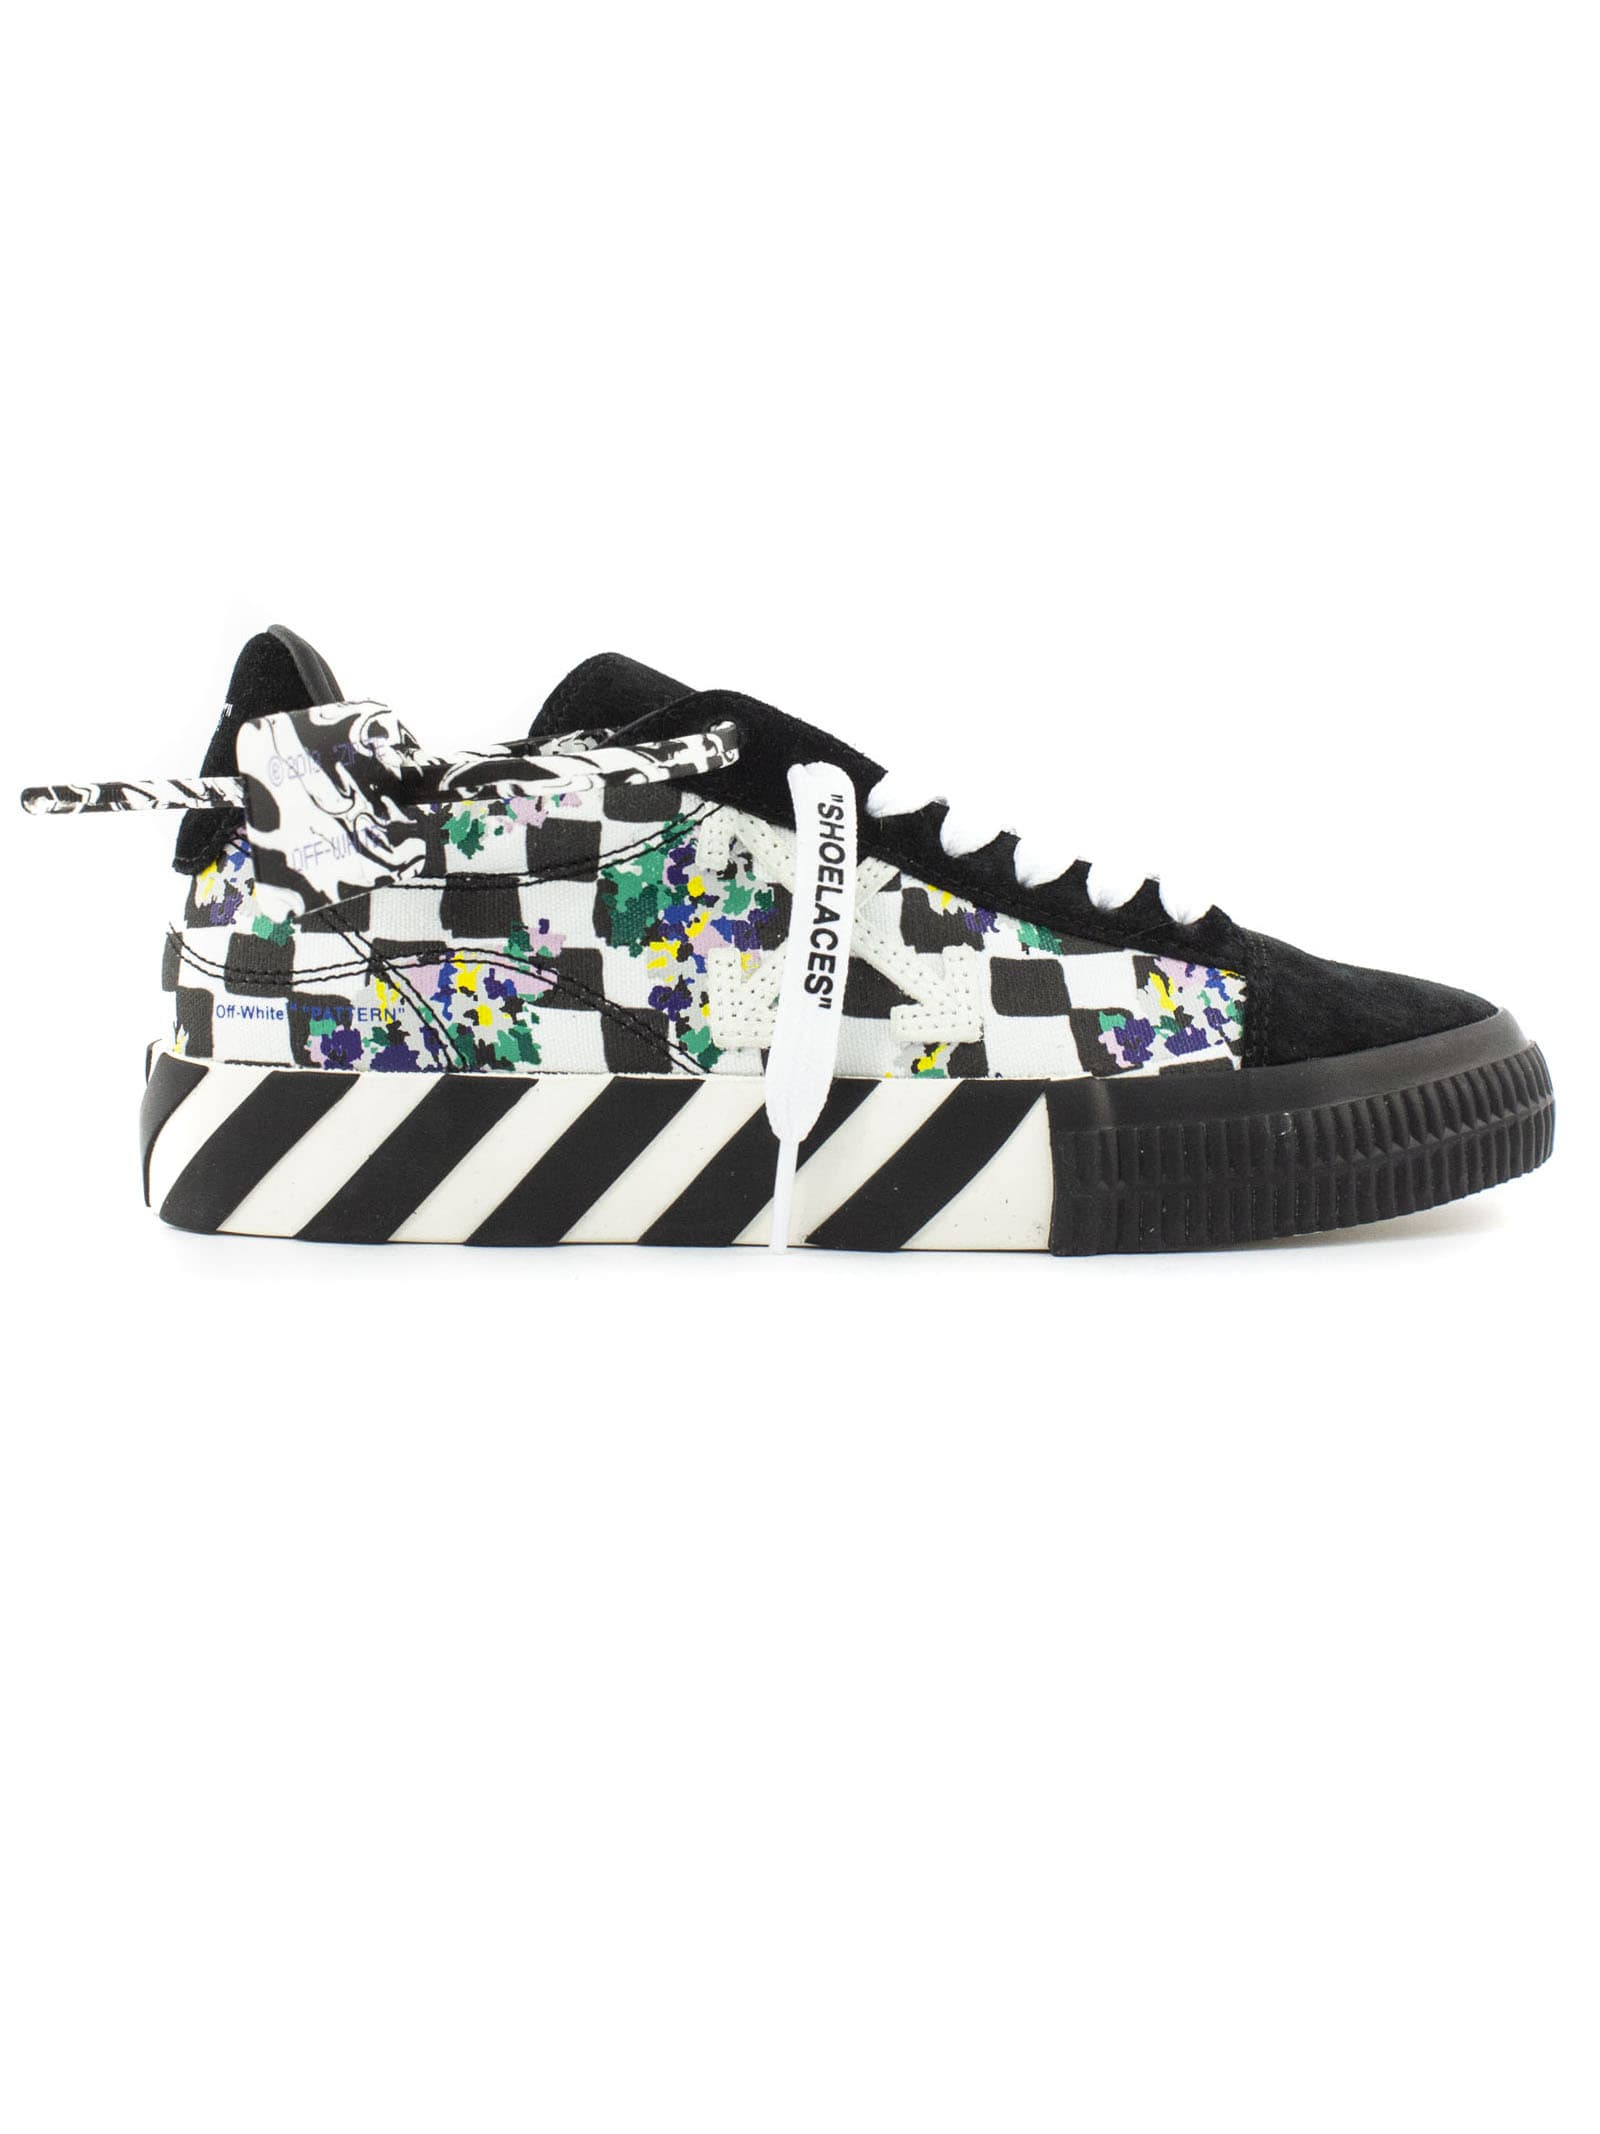 Off-White White And Black Vulcanized Sneakers